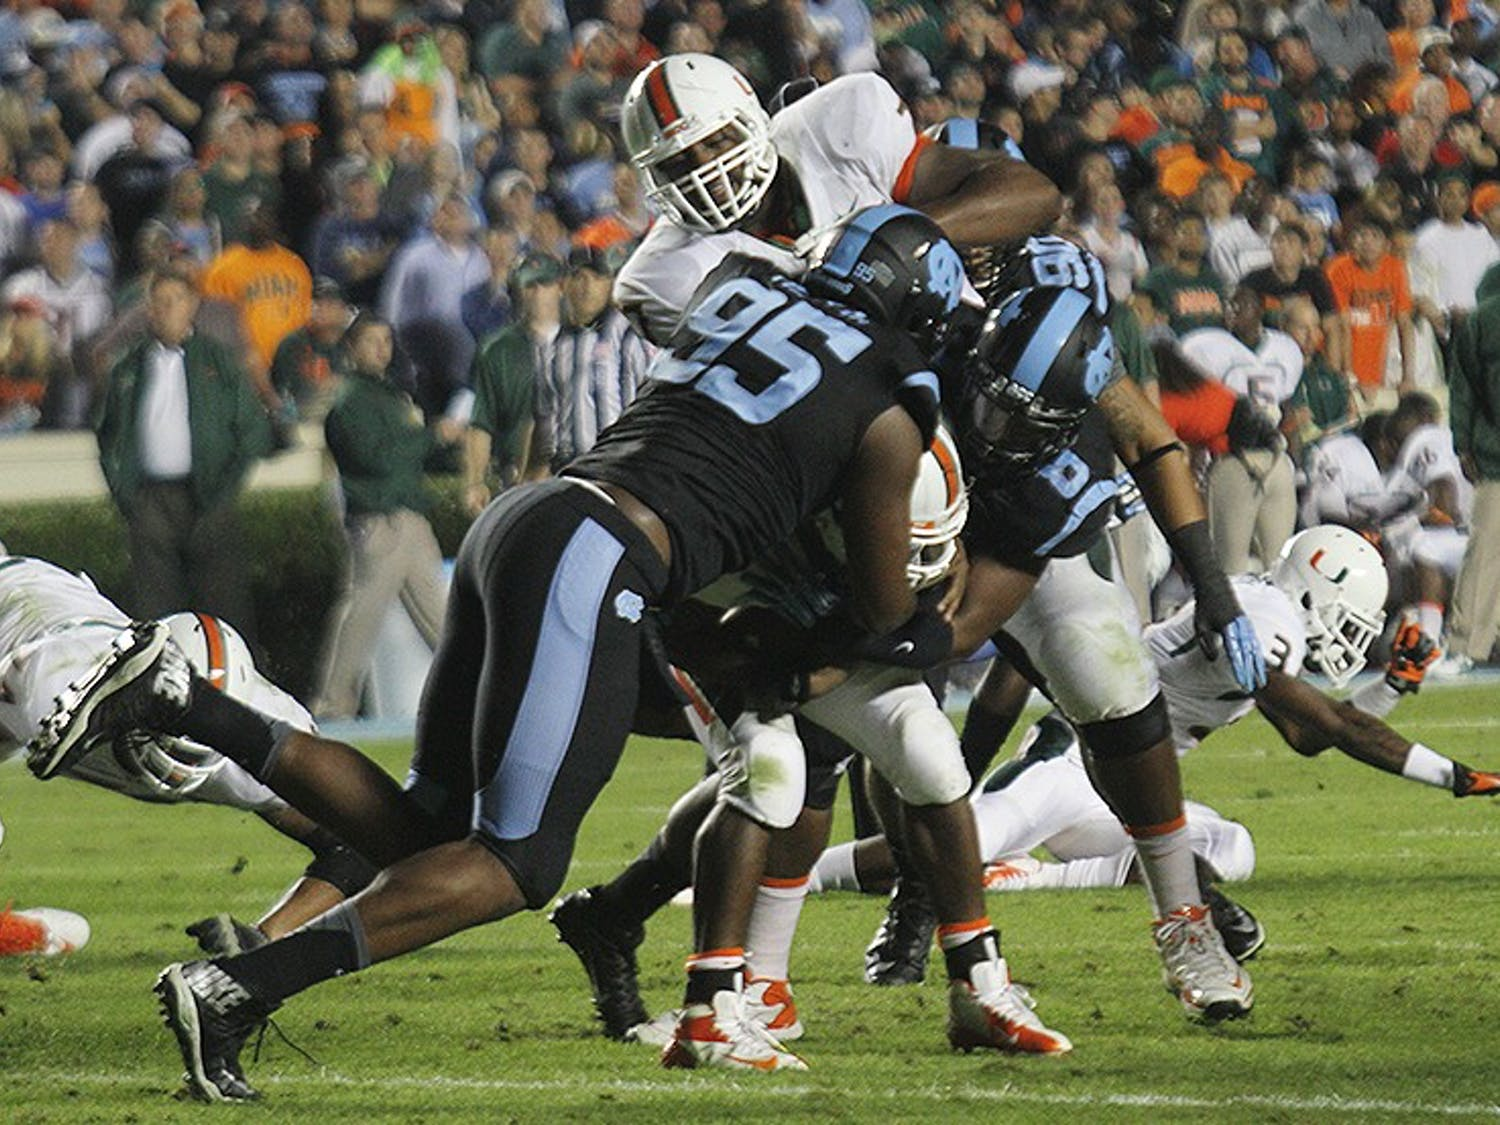 Kareem Martin (95), a senior defensive end, assists a teammate in tackling a player during the game against Miami on Oct. 17. Martin won the ACC's defensive lineman of the week for his performance.